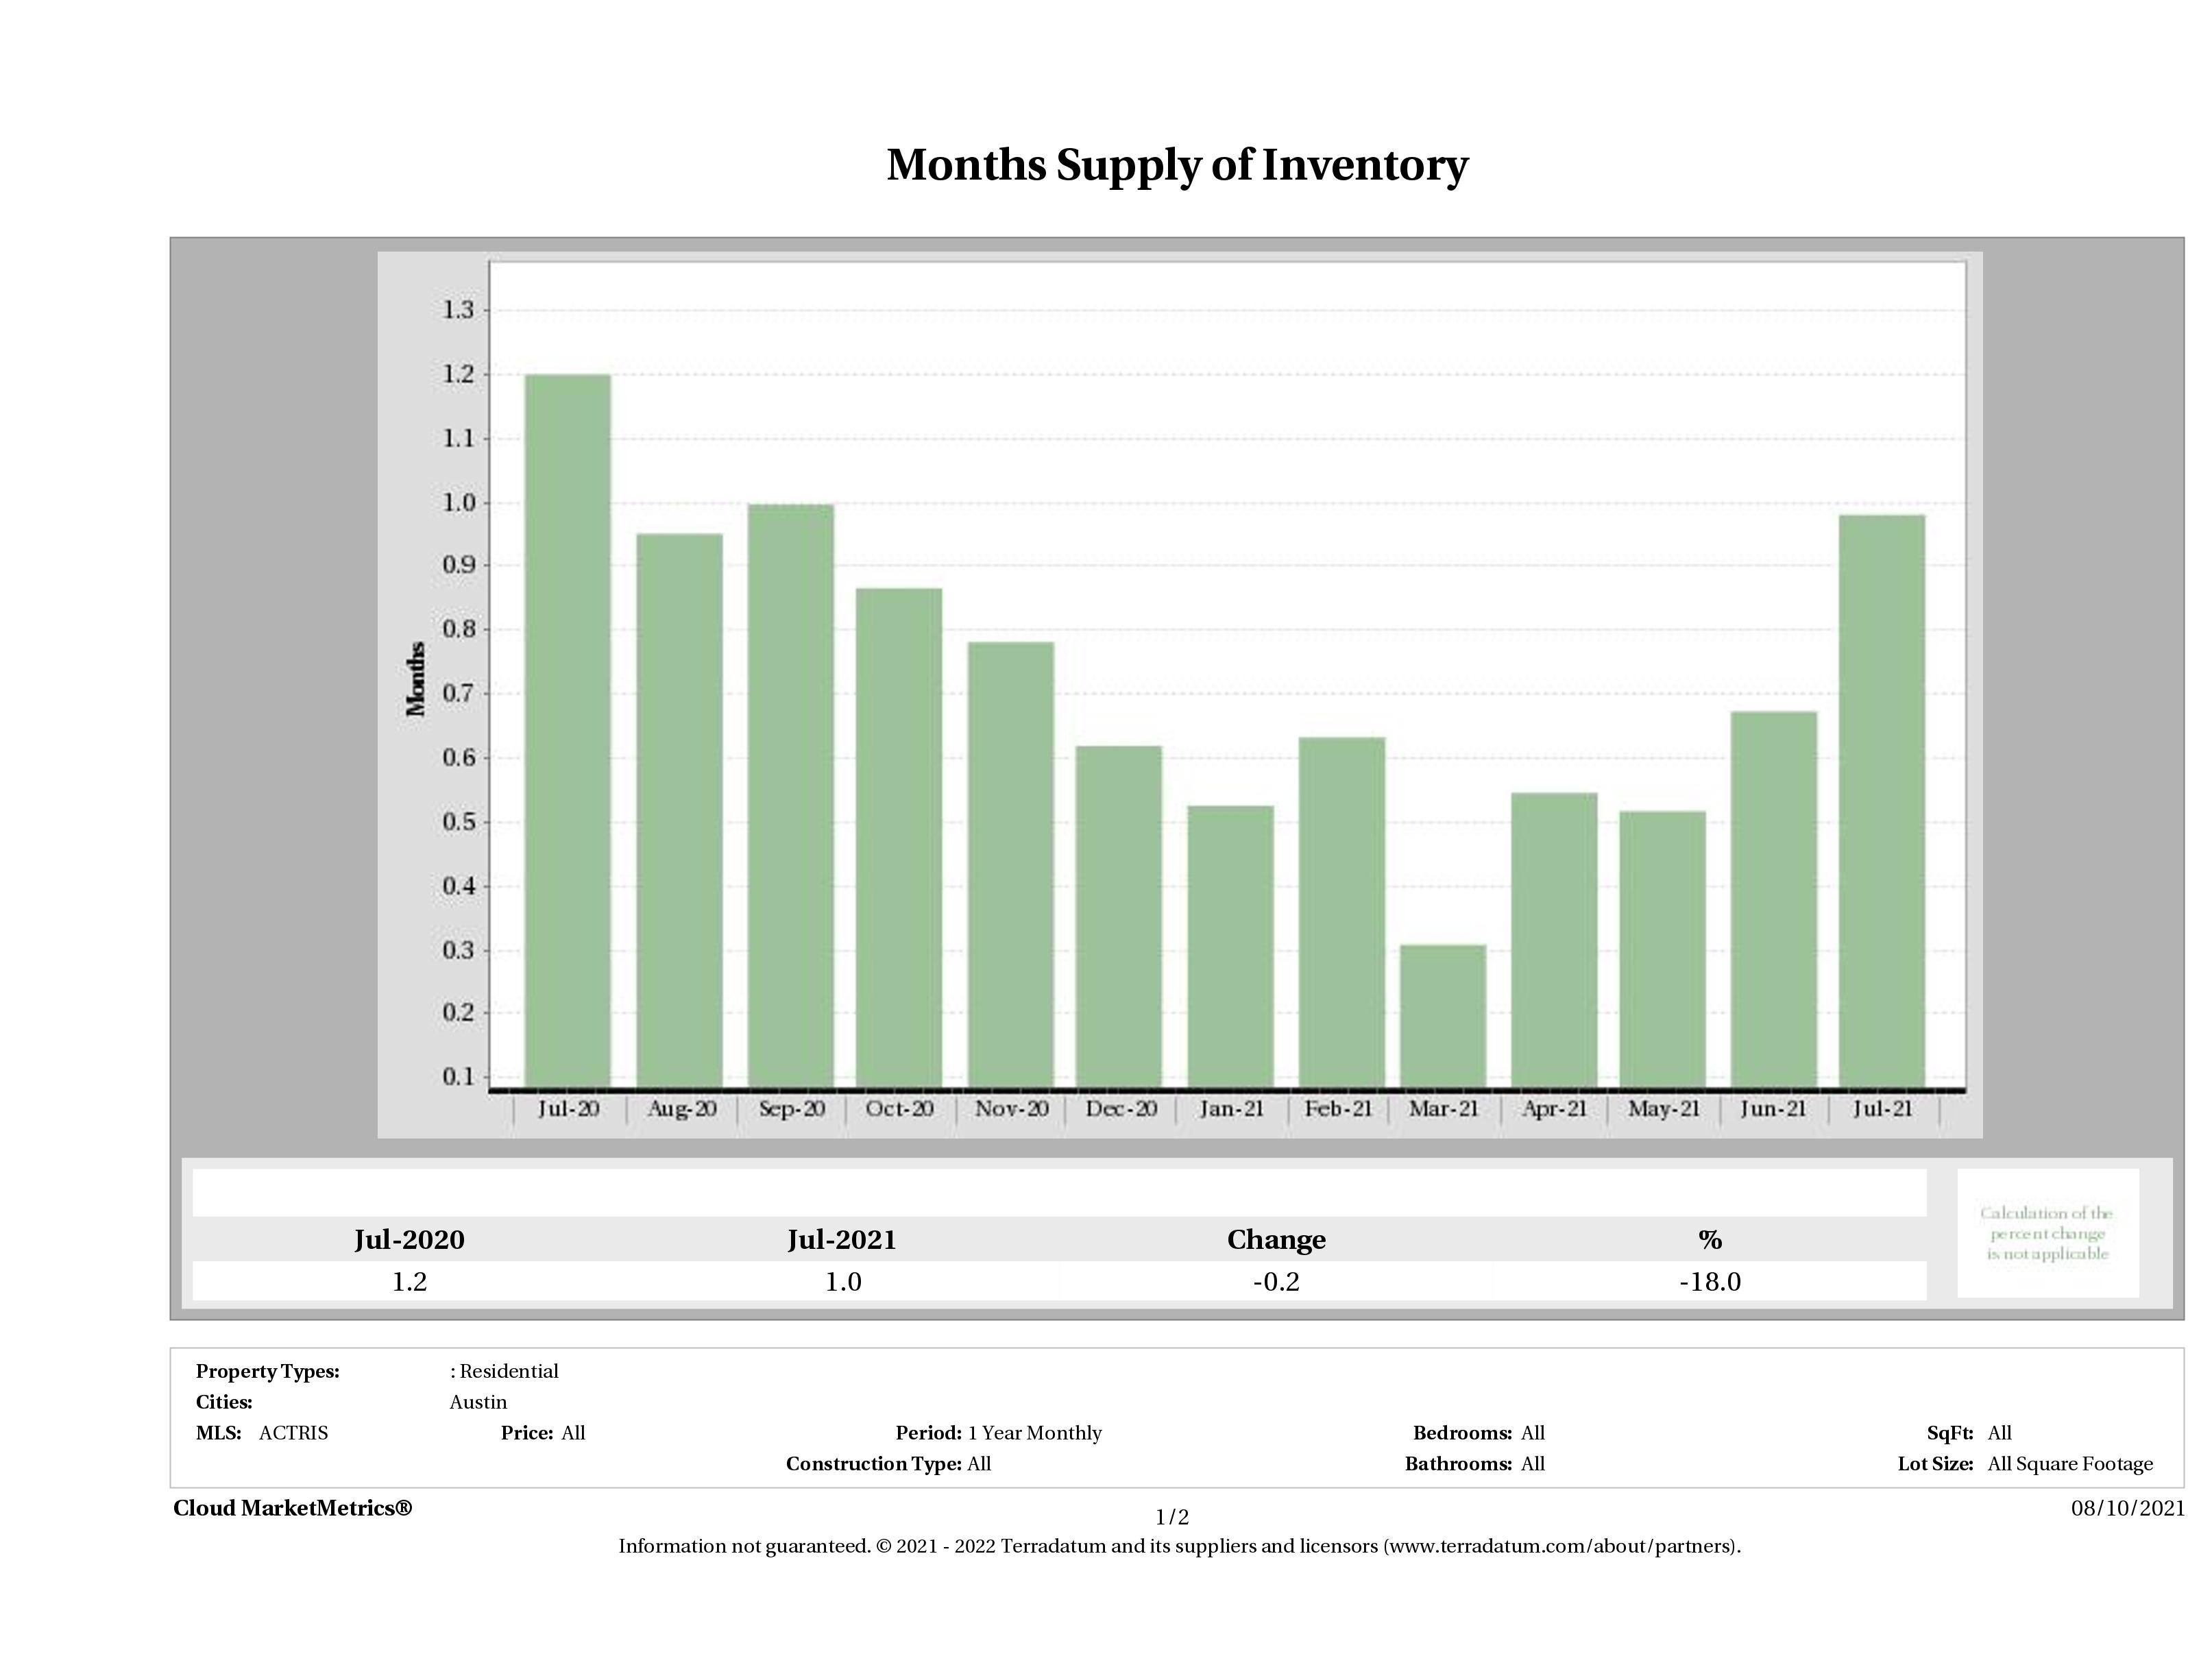 Austin single family home months inventory July 2021